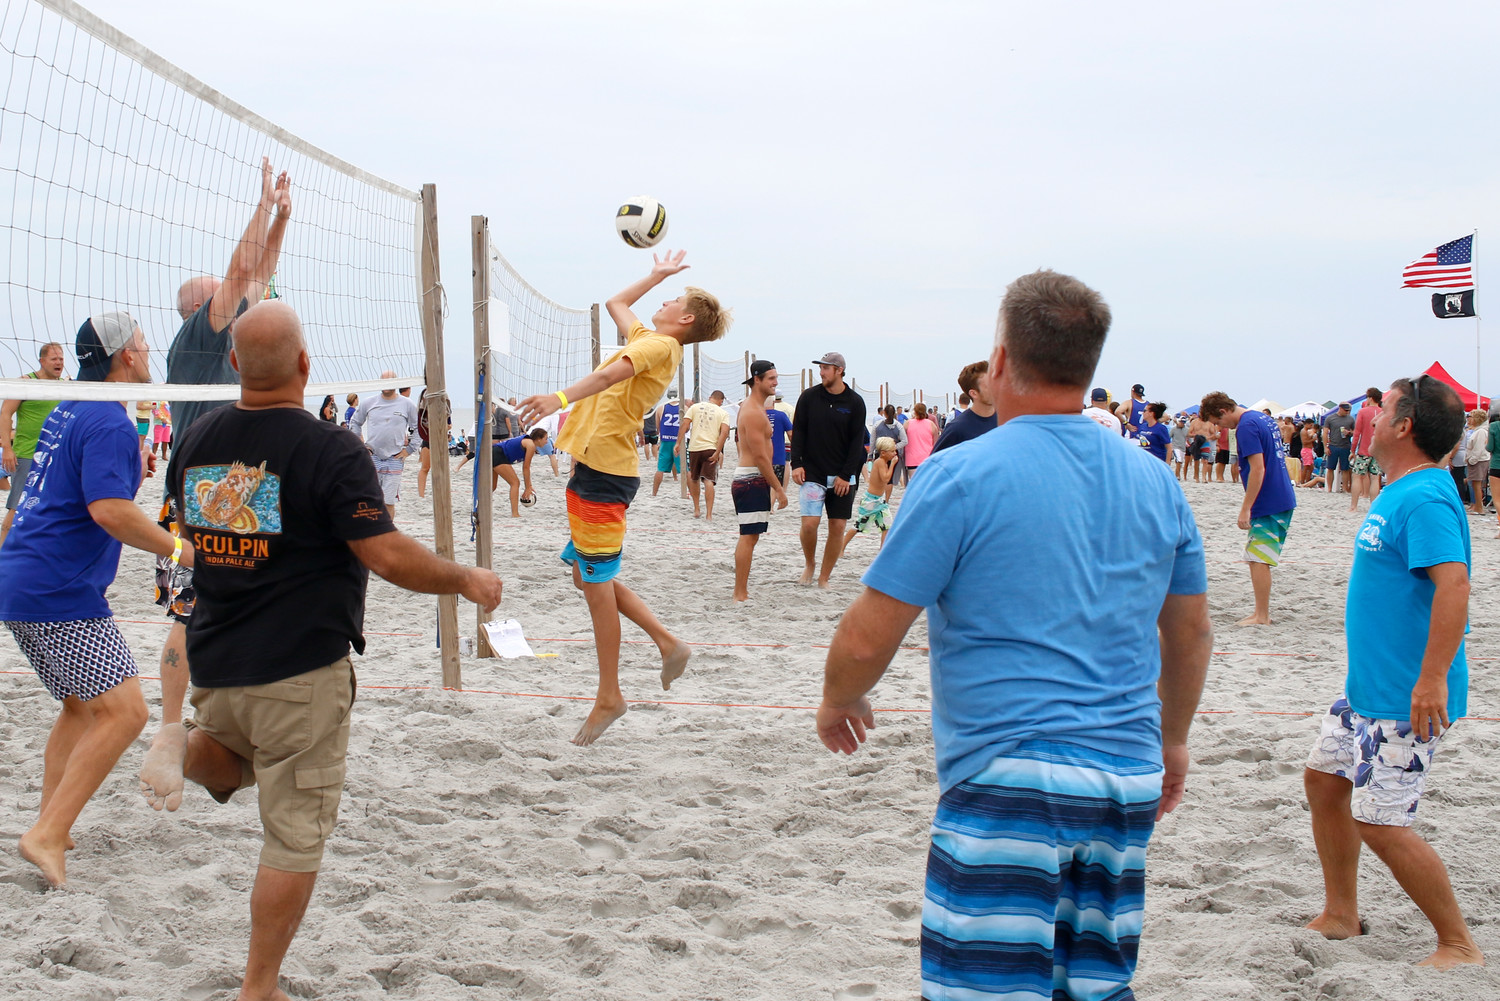 Jay Hyman from Danny's Crew swatted the ball back over the net during the tournament.